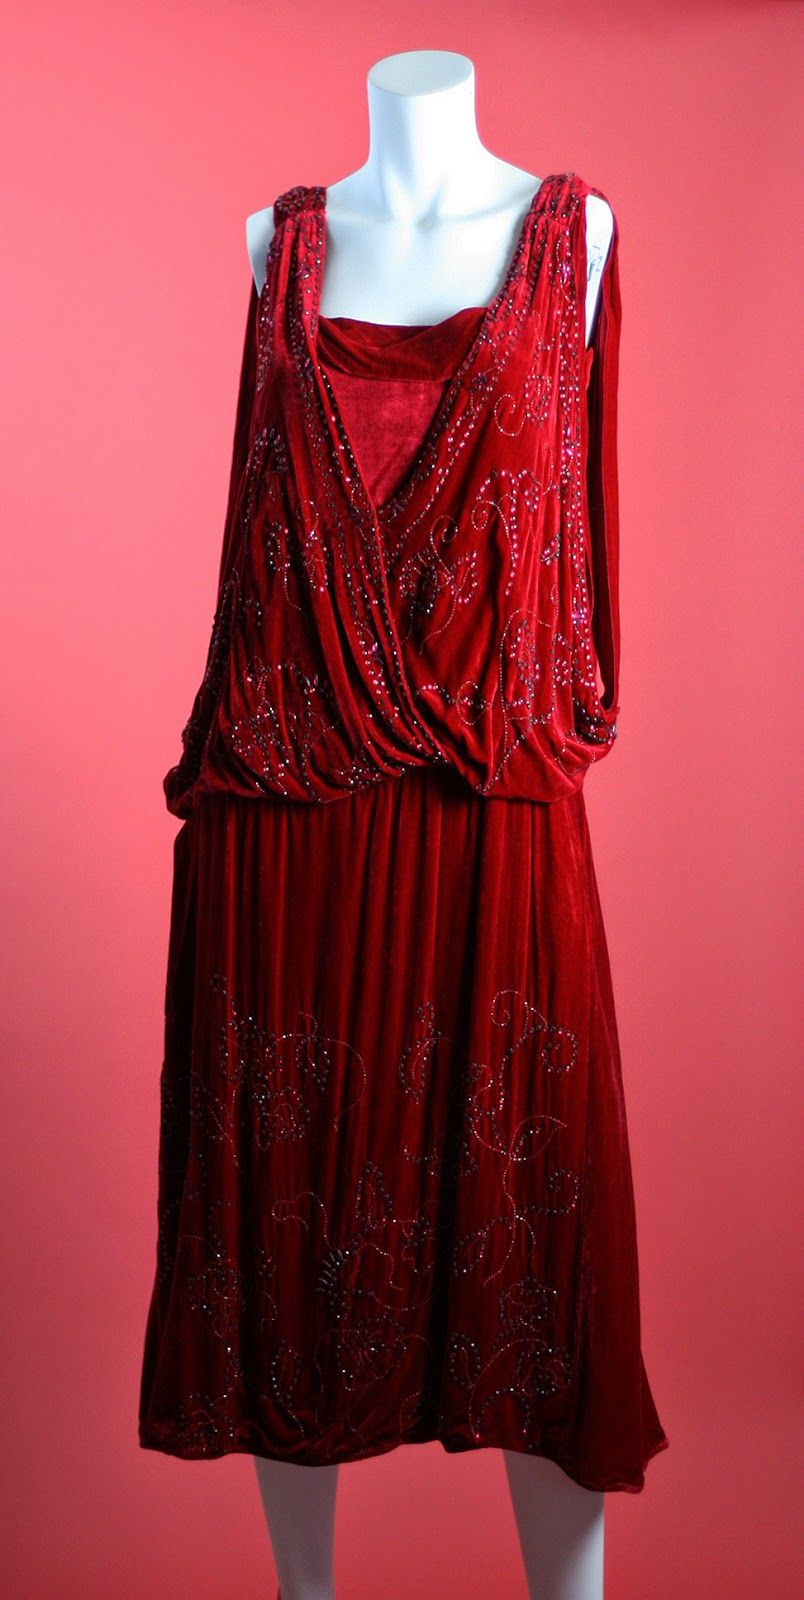 All The Pretty Dresses: The Perfect 1920\'s Christmas Dress | Antique ...